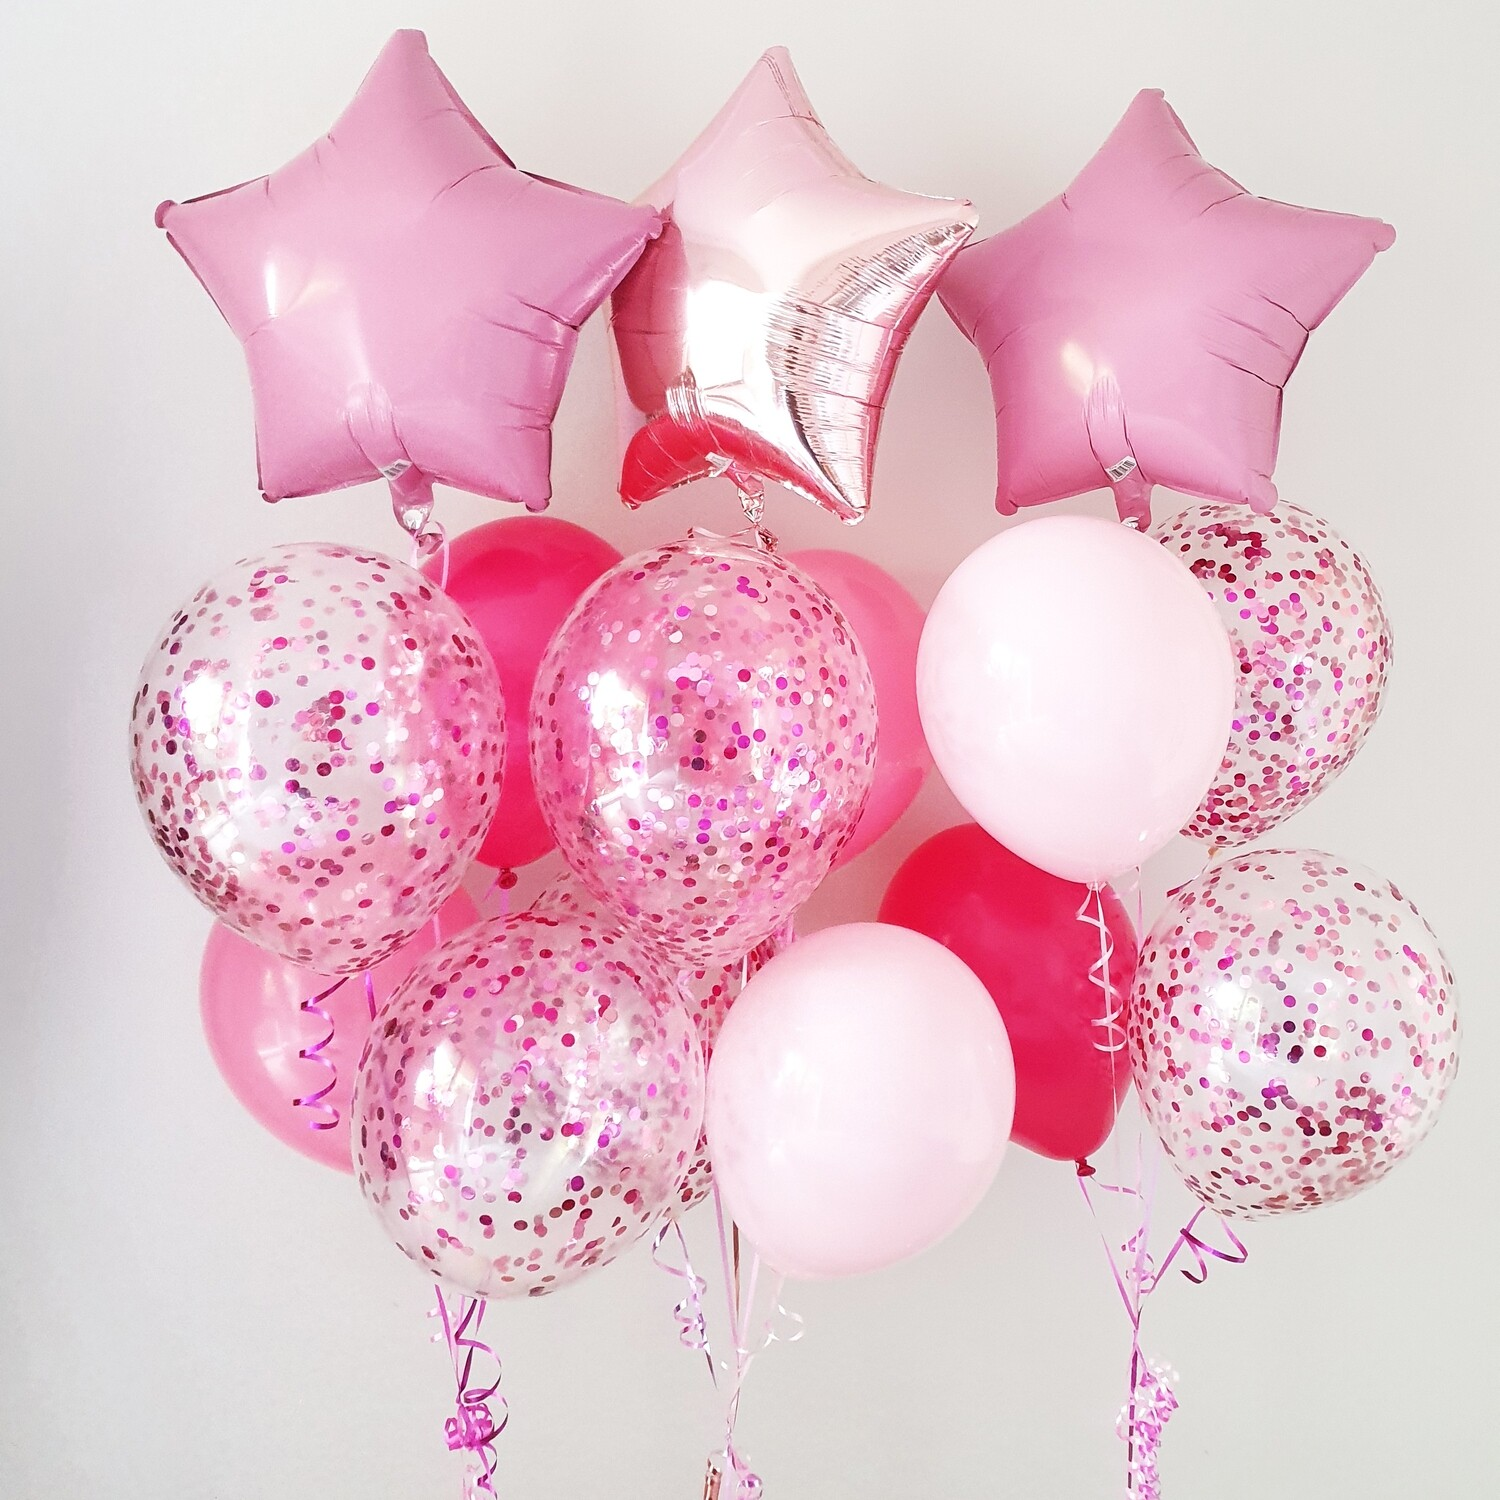 Classic Balloon Bouquets